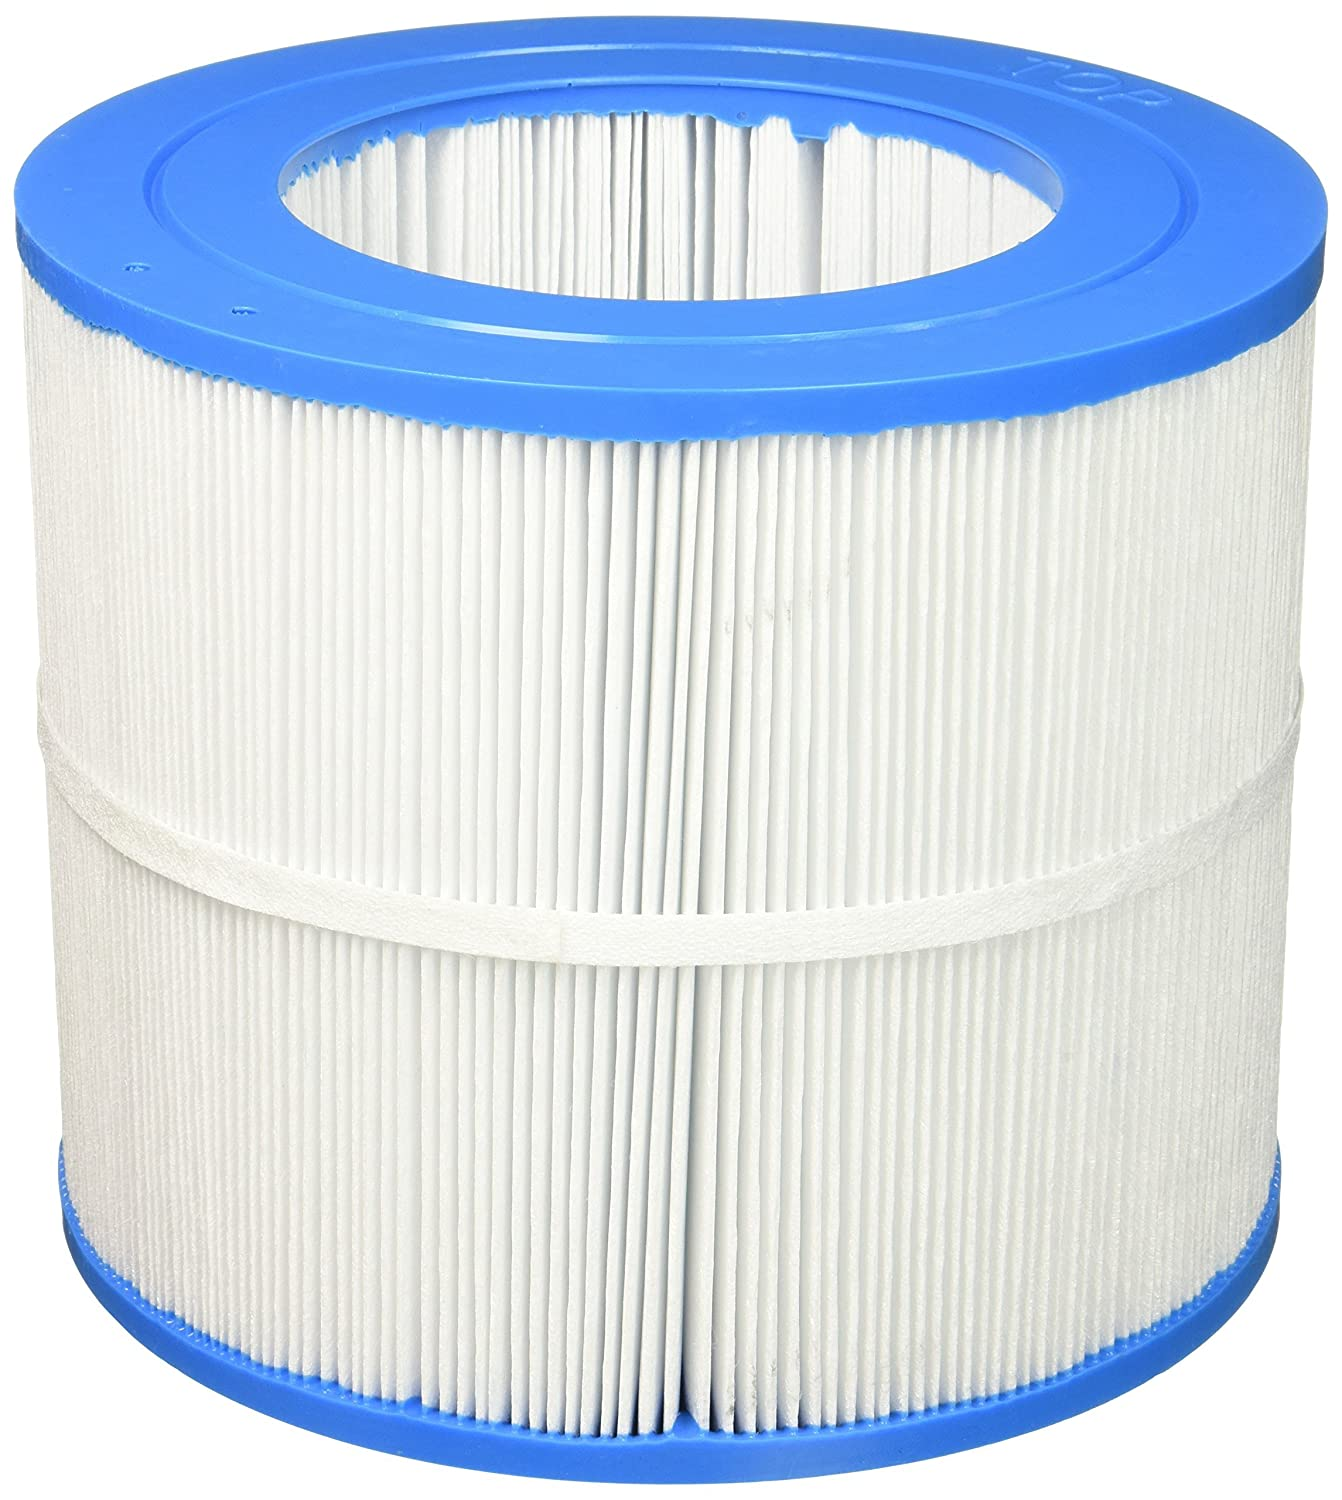 Baleen Filters Pool Filter Replaces Unicel # C-9405 (Pleatco # PAP50-4, Filbur # FC-0684) for Swimming Pool and Spa AK-8001